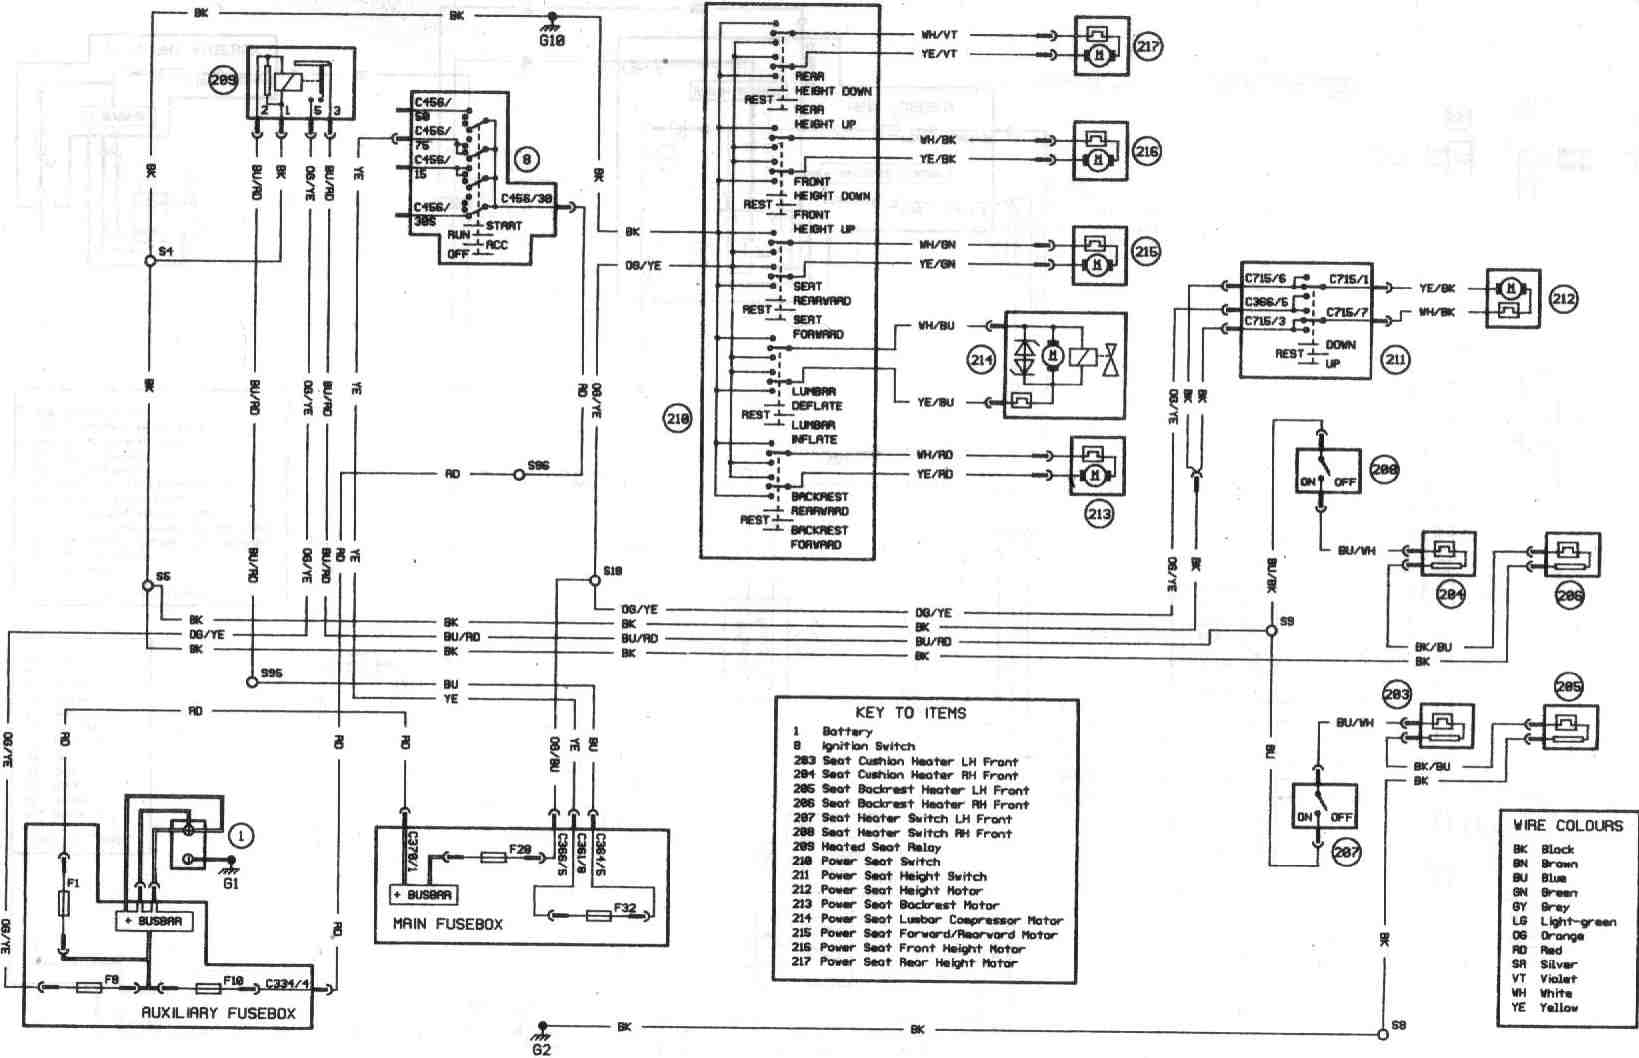 hight resolution of ford focus 2 wiring diagrams wiring diagram imgford focus 2 wiring diagrams wiring diagrams konsult ford